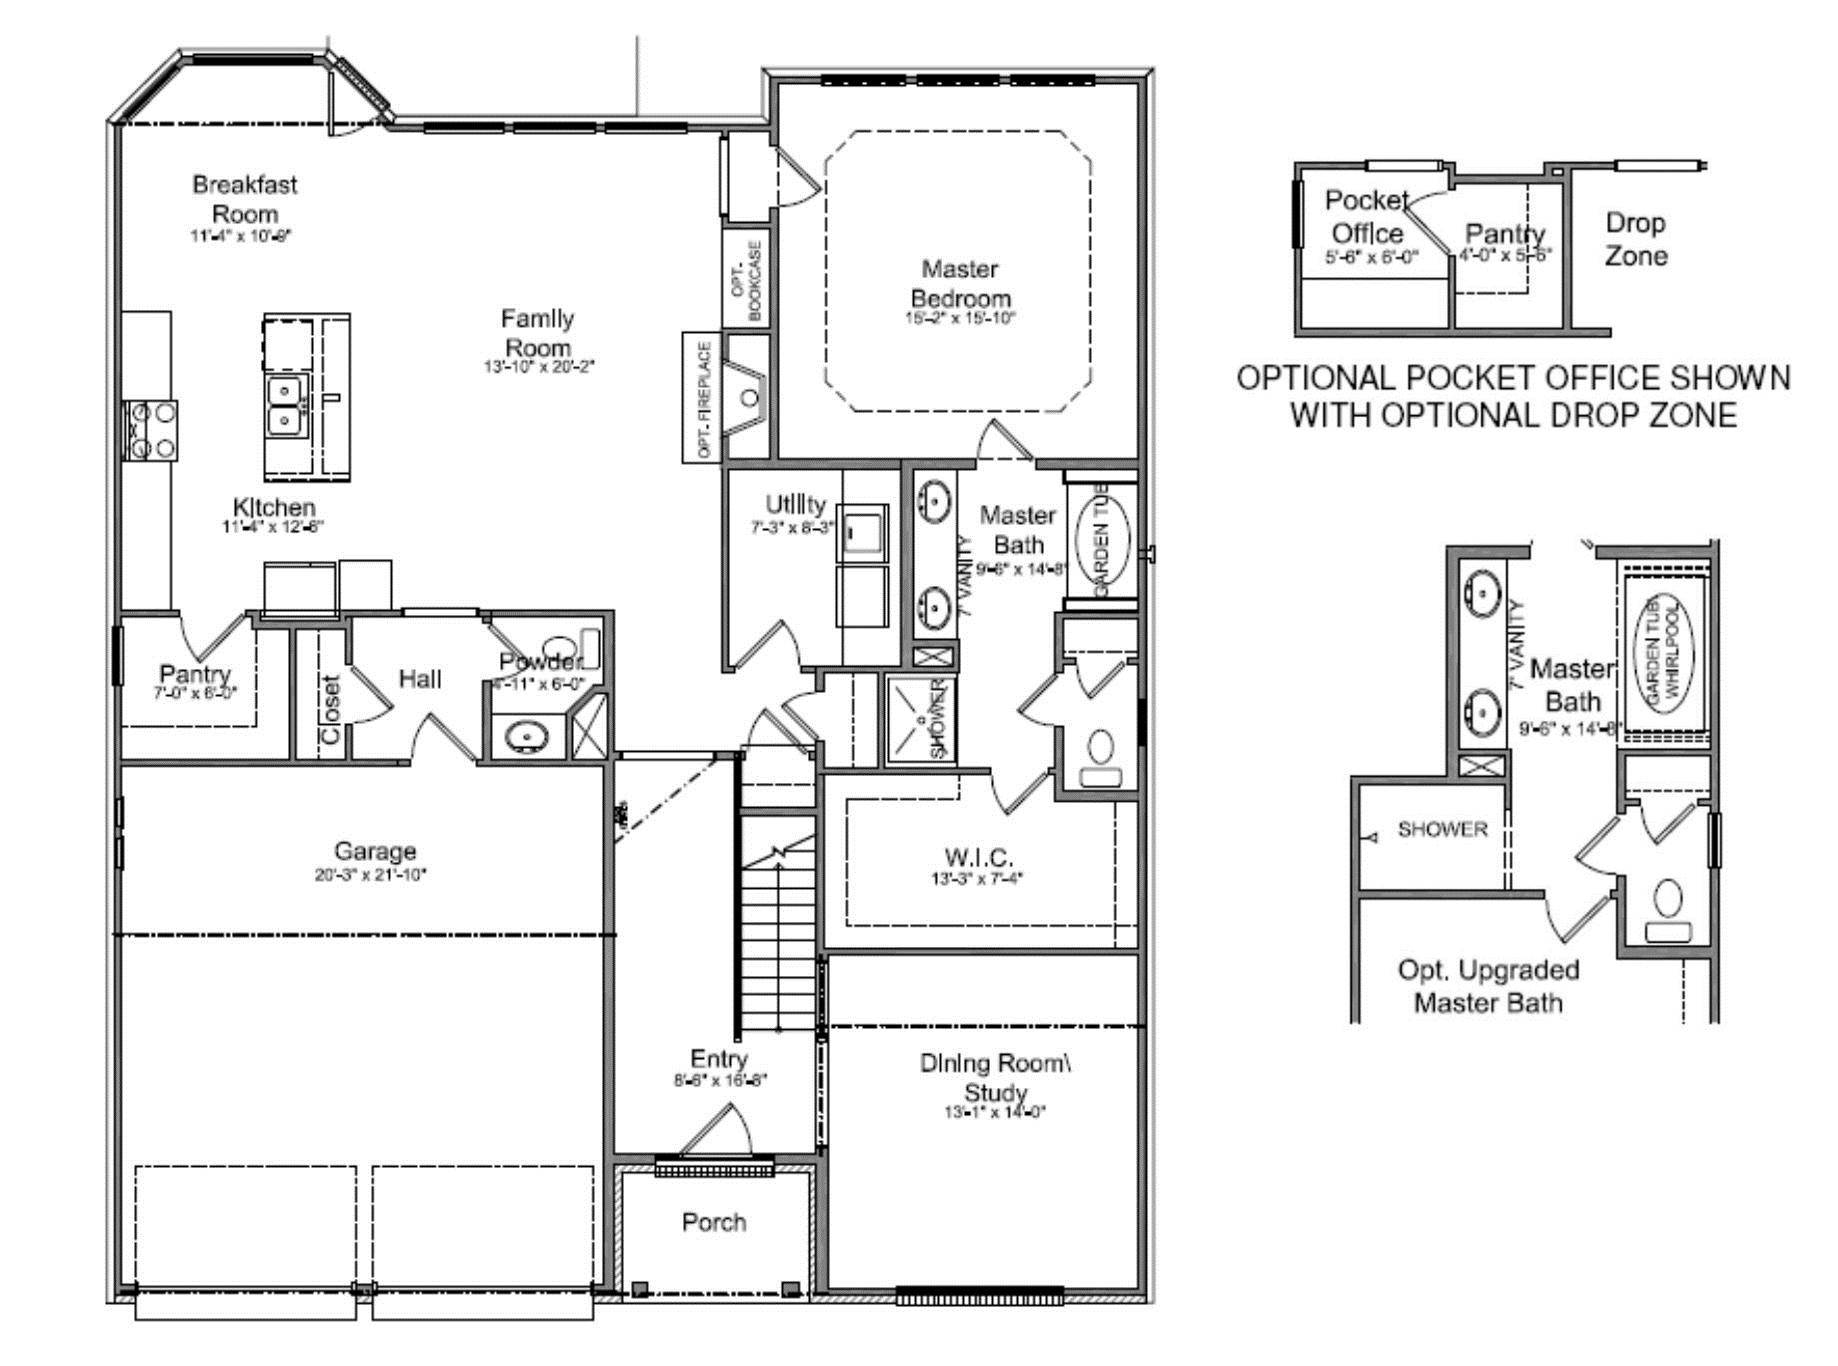 Walk In Closet And Bathroom Floor Plans Roselawnlutheran: master bedroom with master bath layout